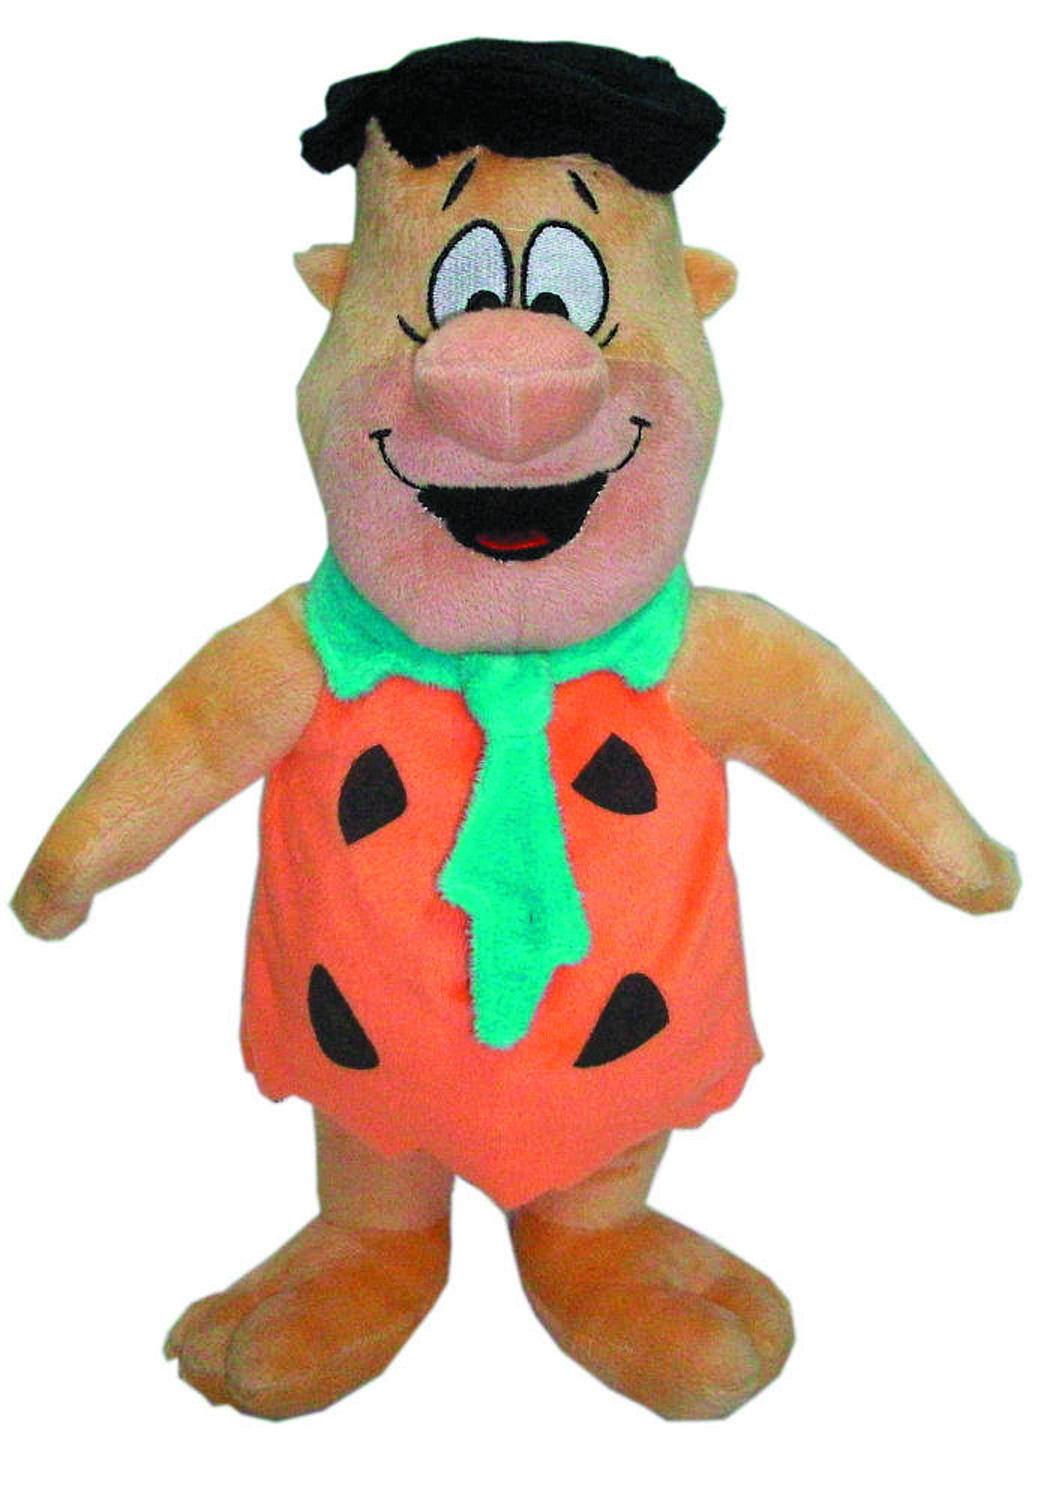 HANNA BARBERA FRED FLINTSTONE 12IN PLUSH